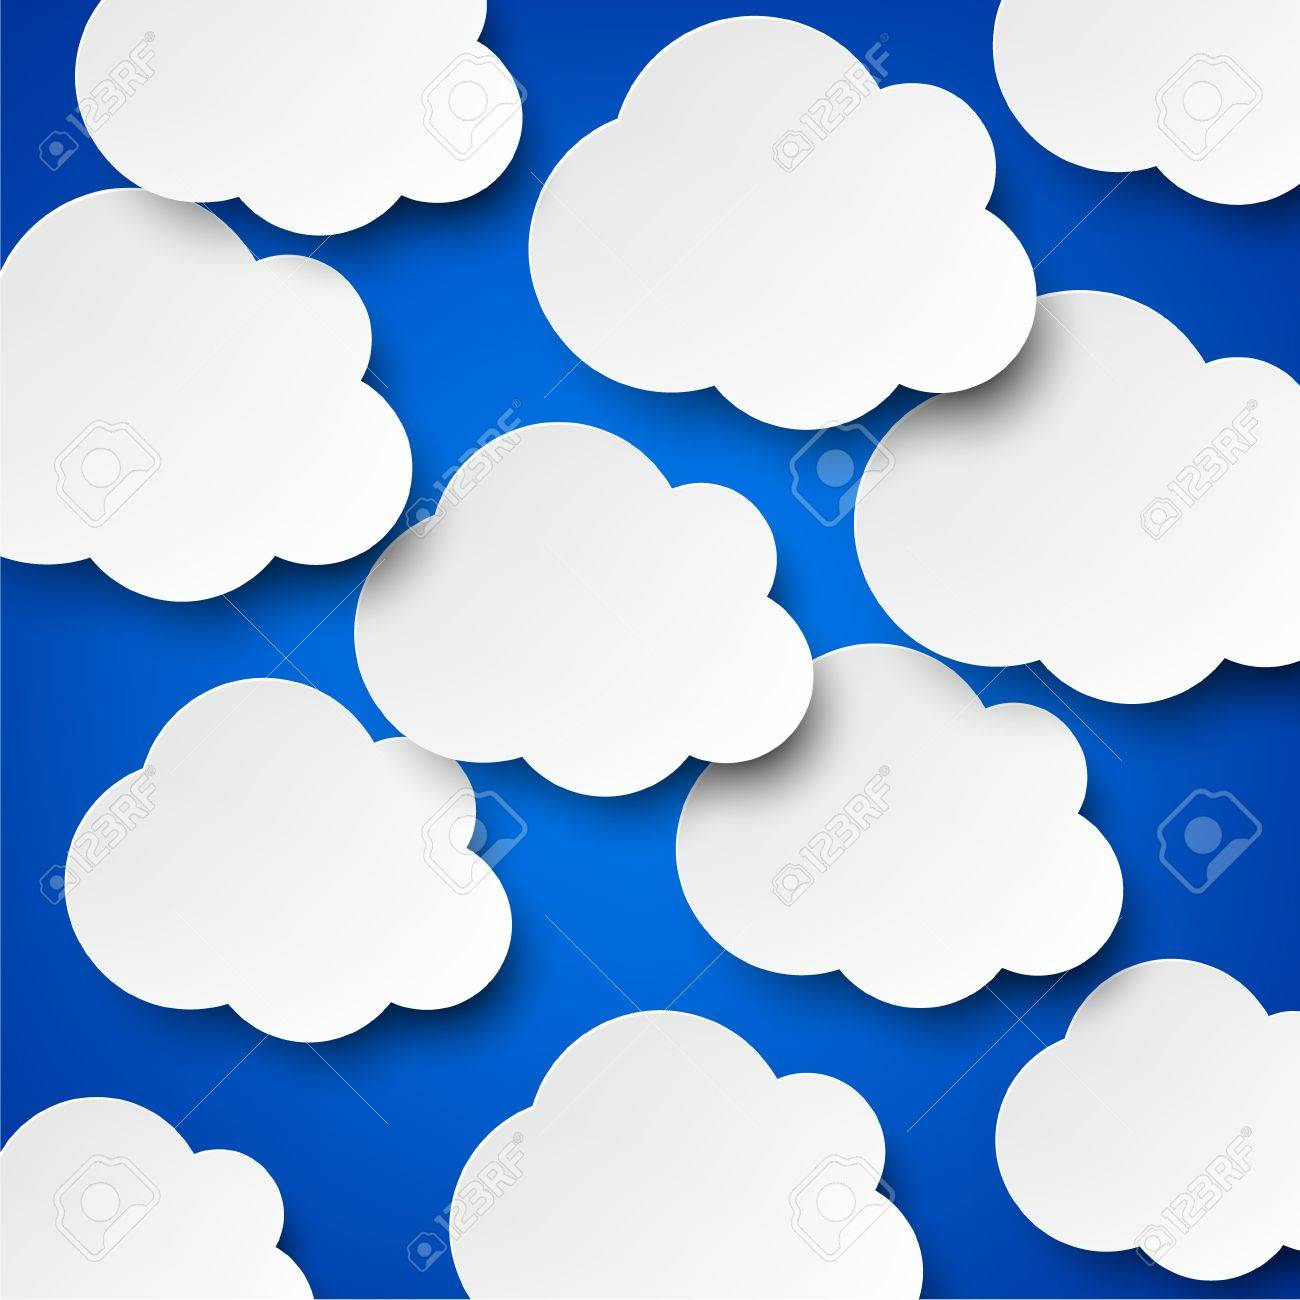 Vector abstract background composed of white paper clouds over blue Stock Vector - 17602357